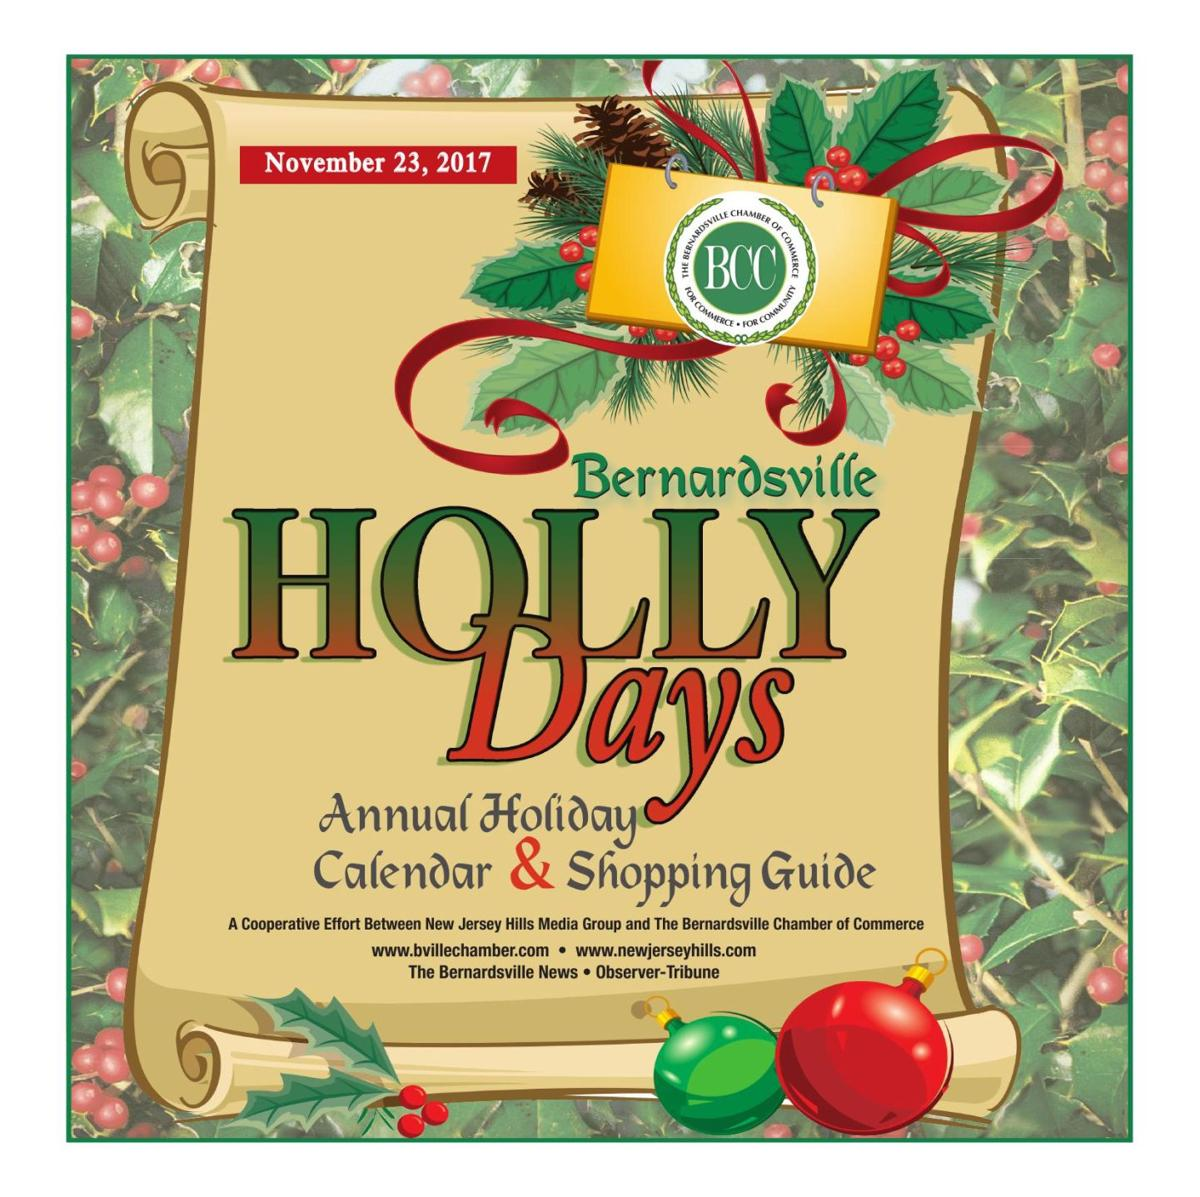 Holly Days - November 23, 2017